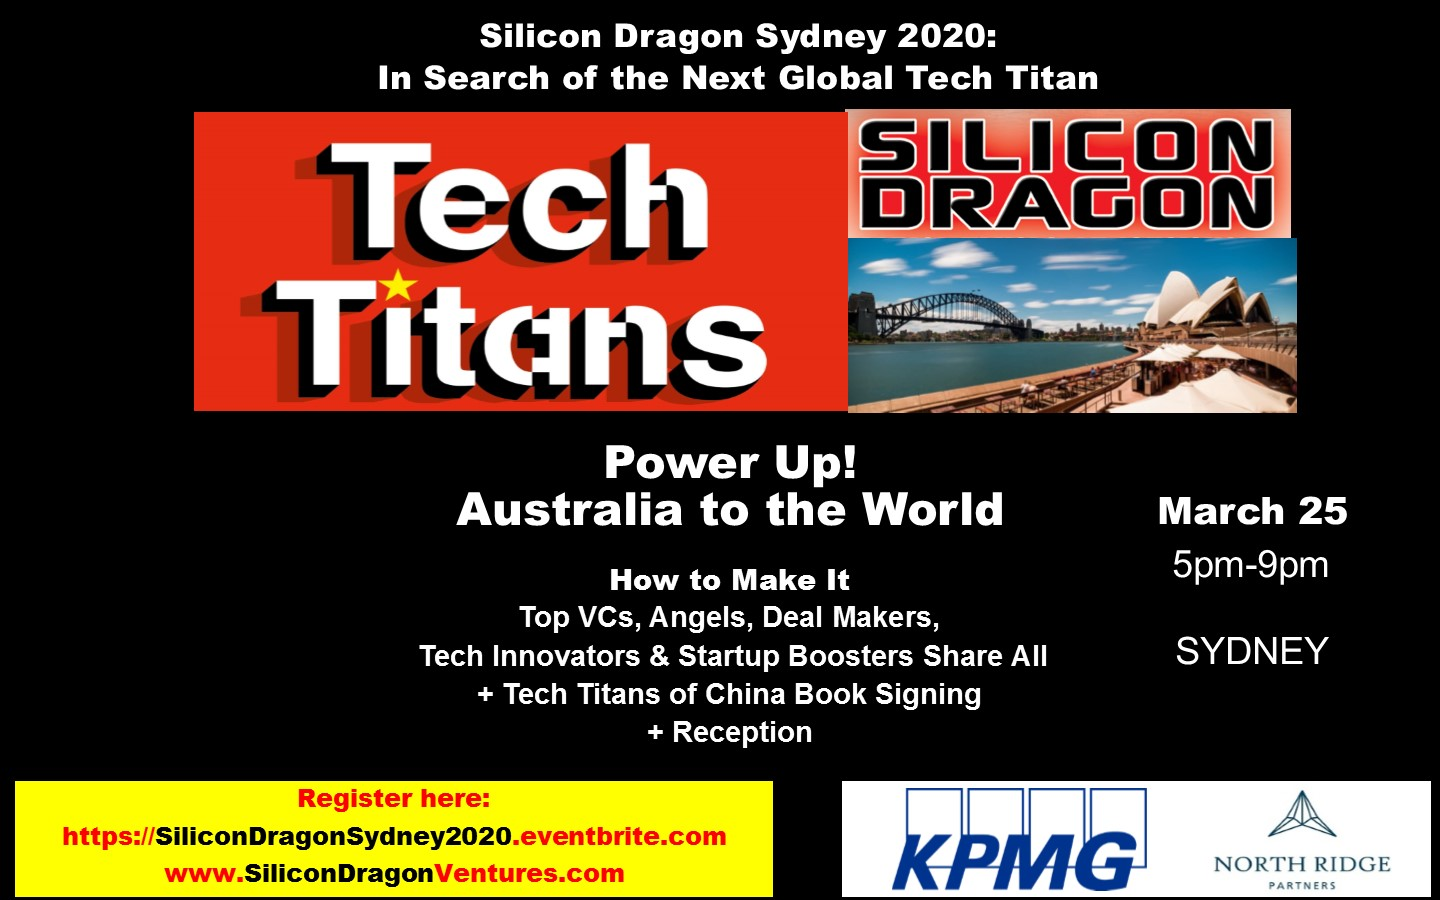 Silicon Dragon Sydney 2020 @ International Towers Sydney, 300 Barangaroo Avenue